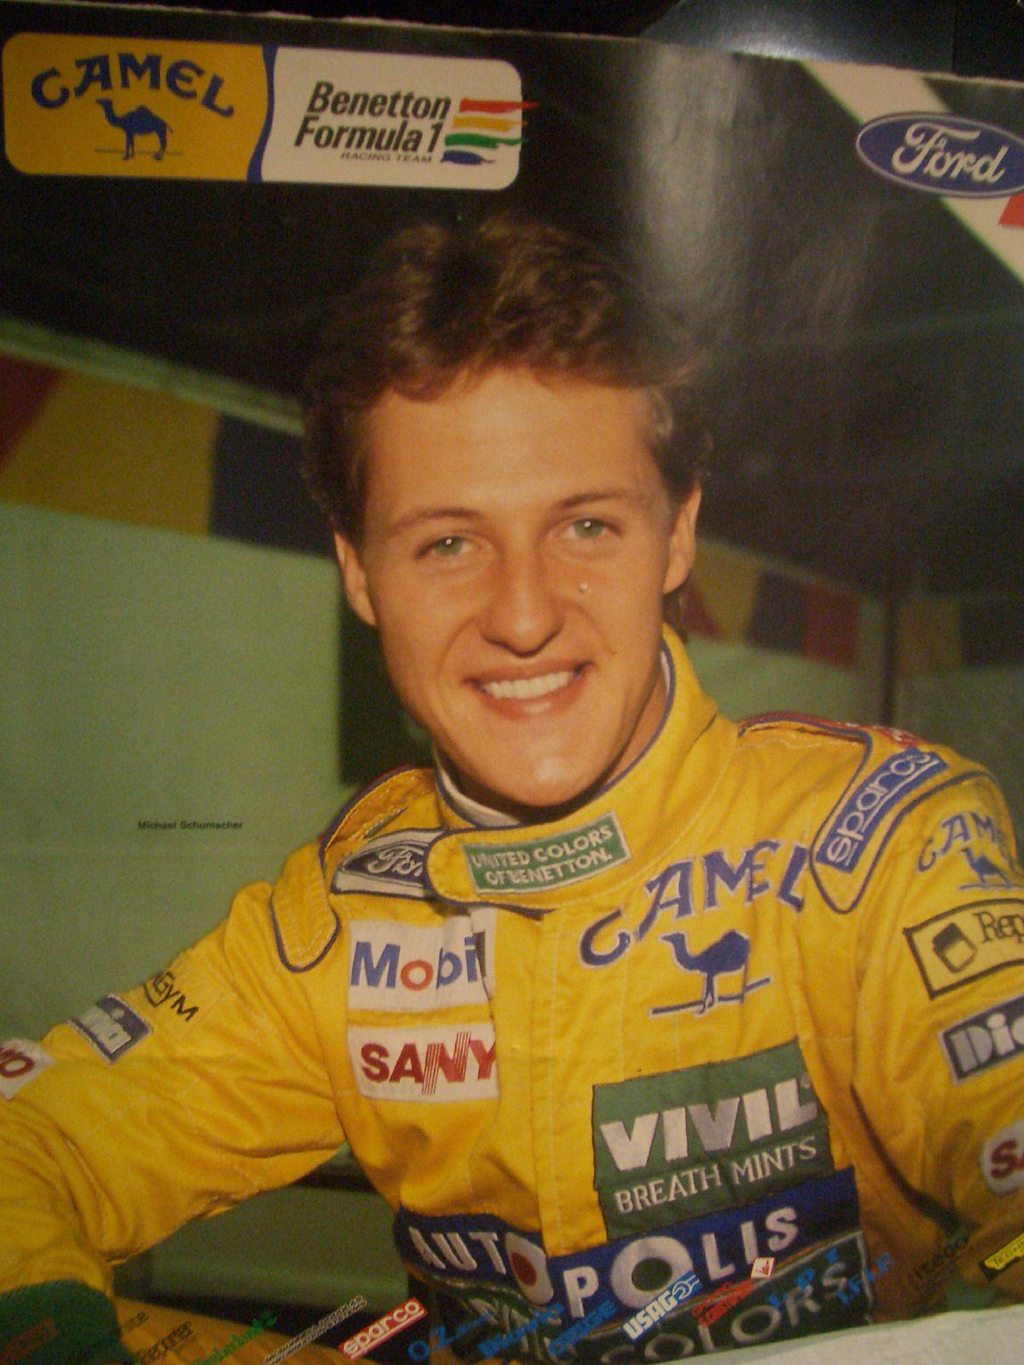 Michael-Schumacher-young-age